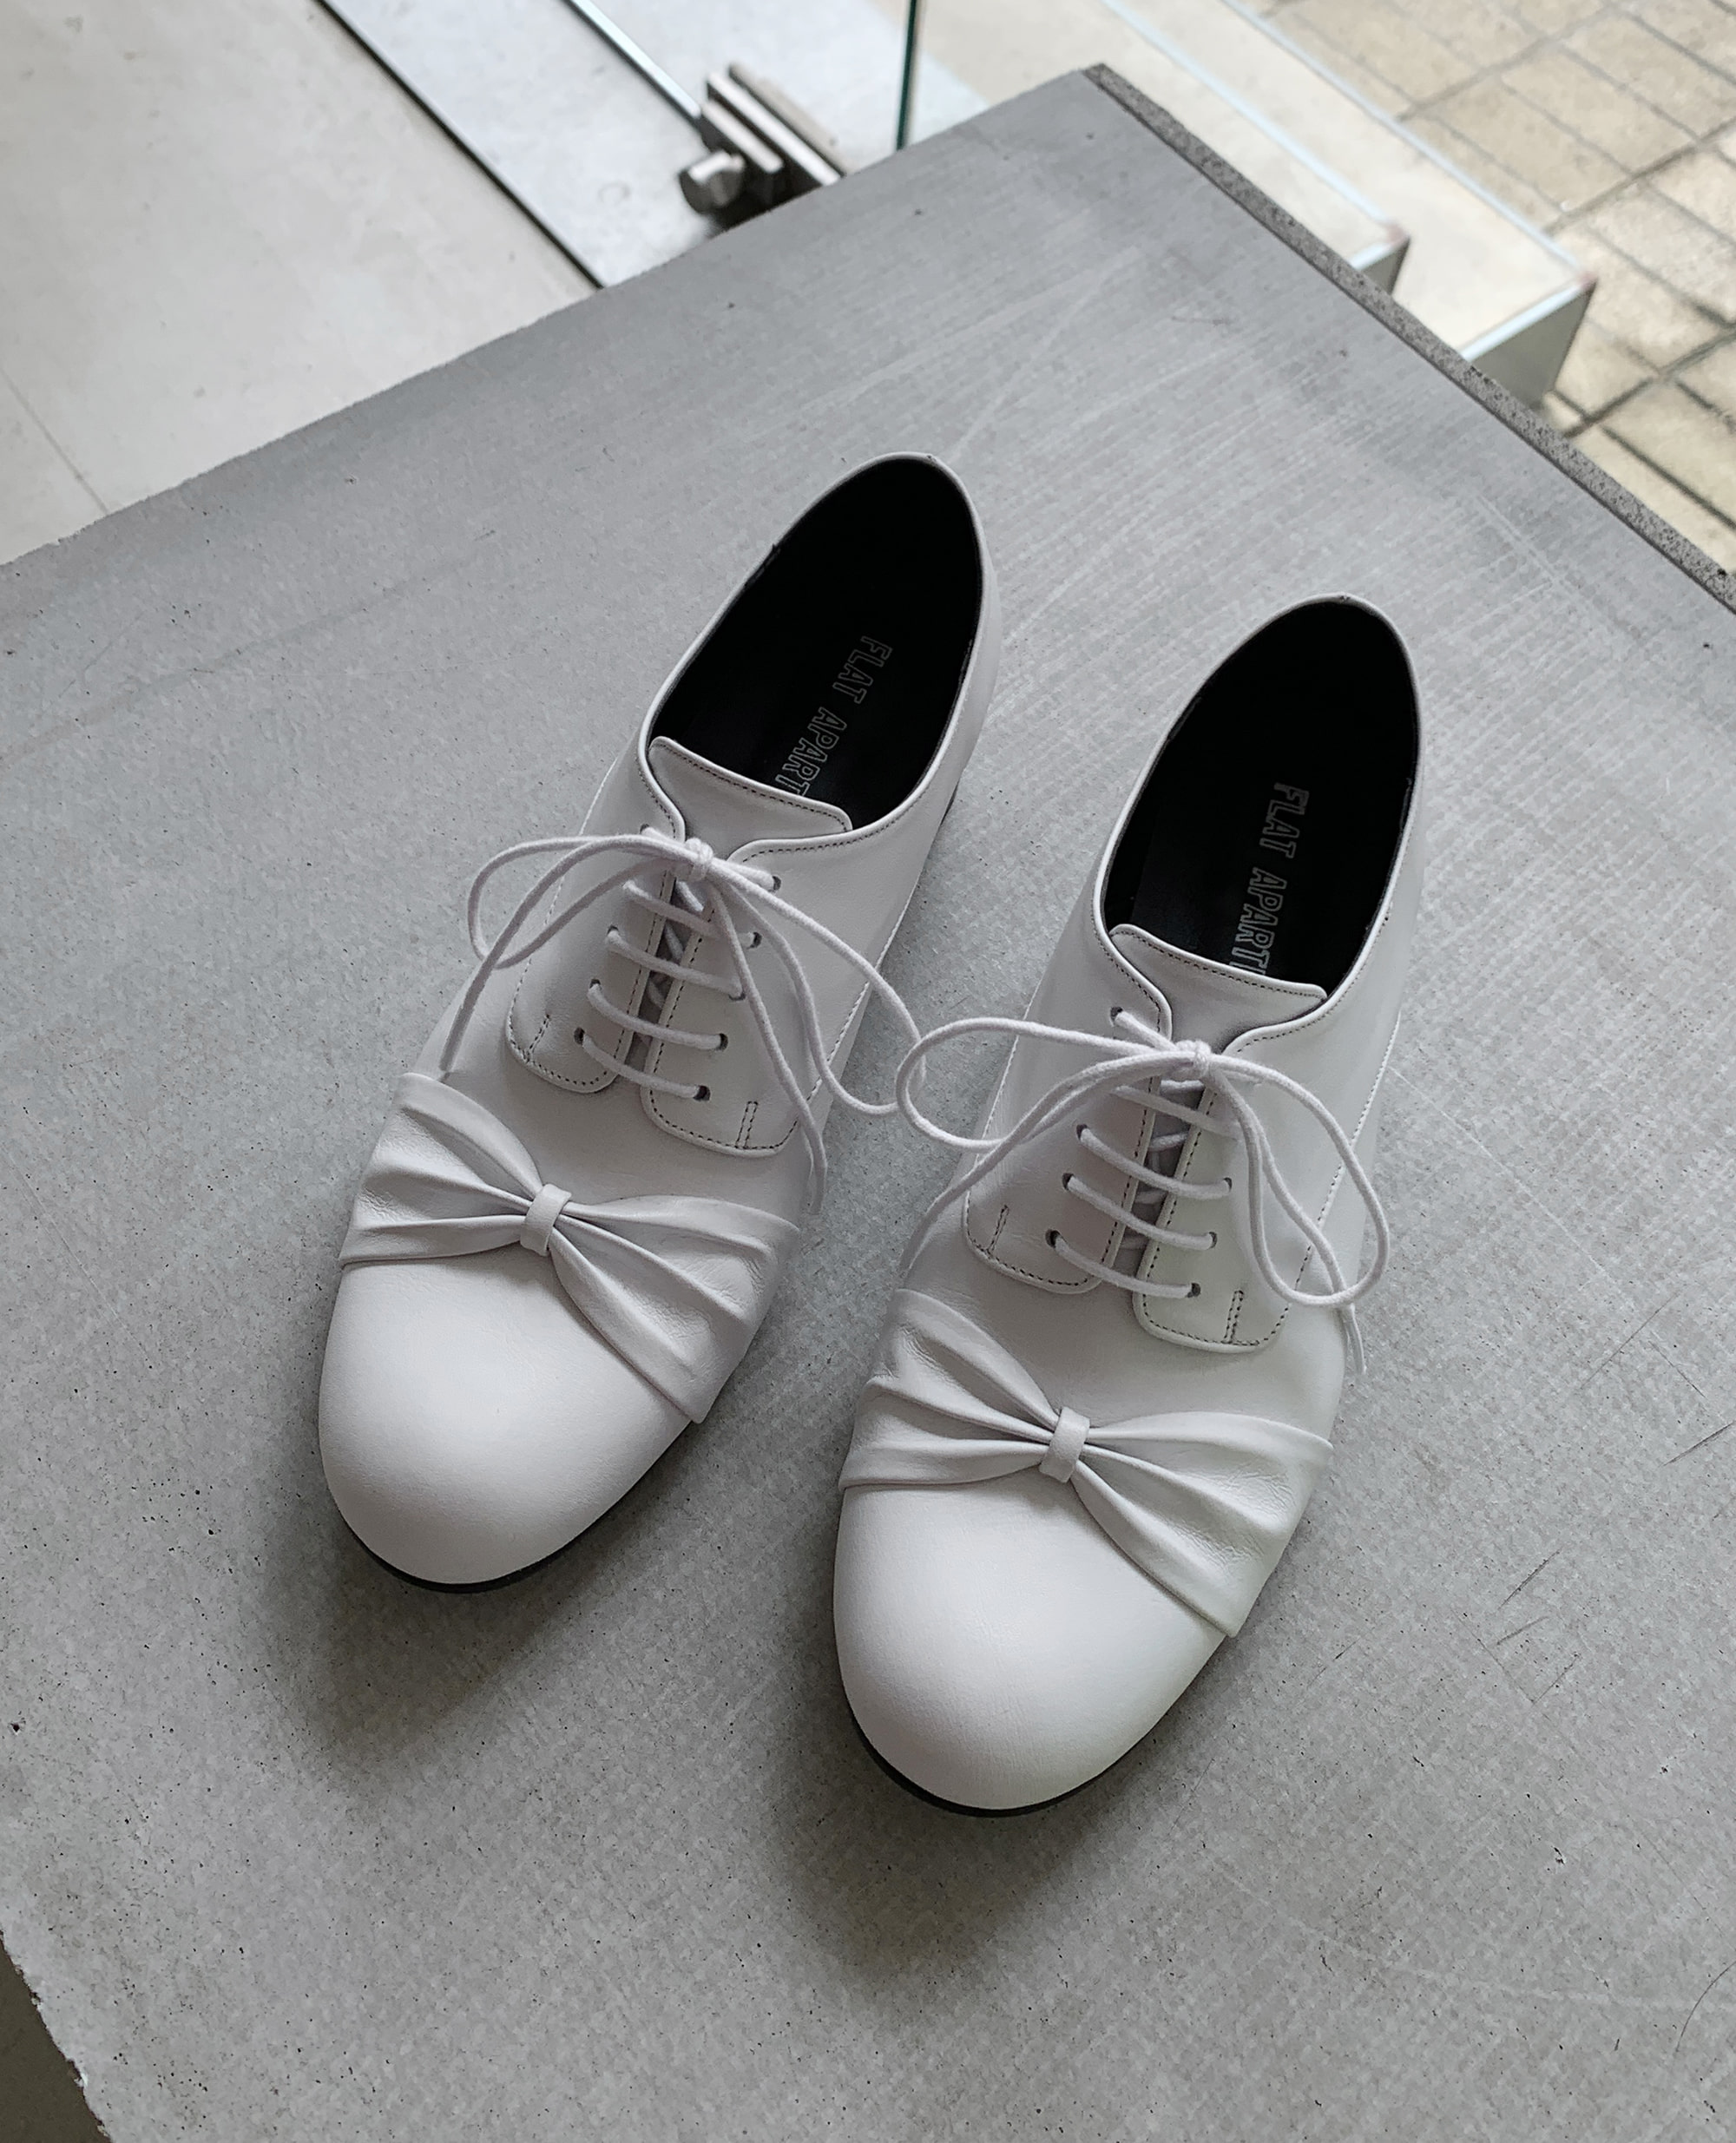 FLATAPARTMENTCIRCLE, RIBBONSHOES, OXFORDS, SHOES, FLATS, 플랫아파트먼트써클